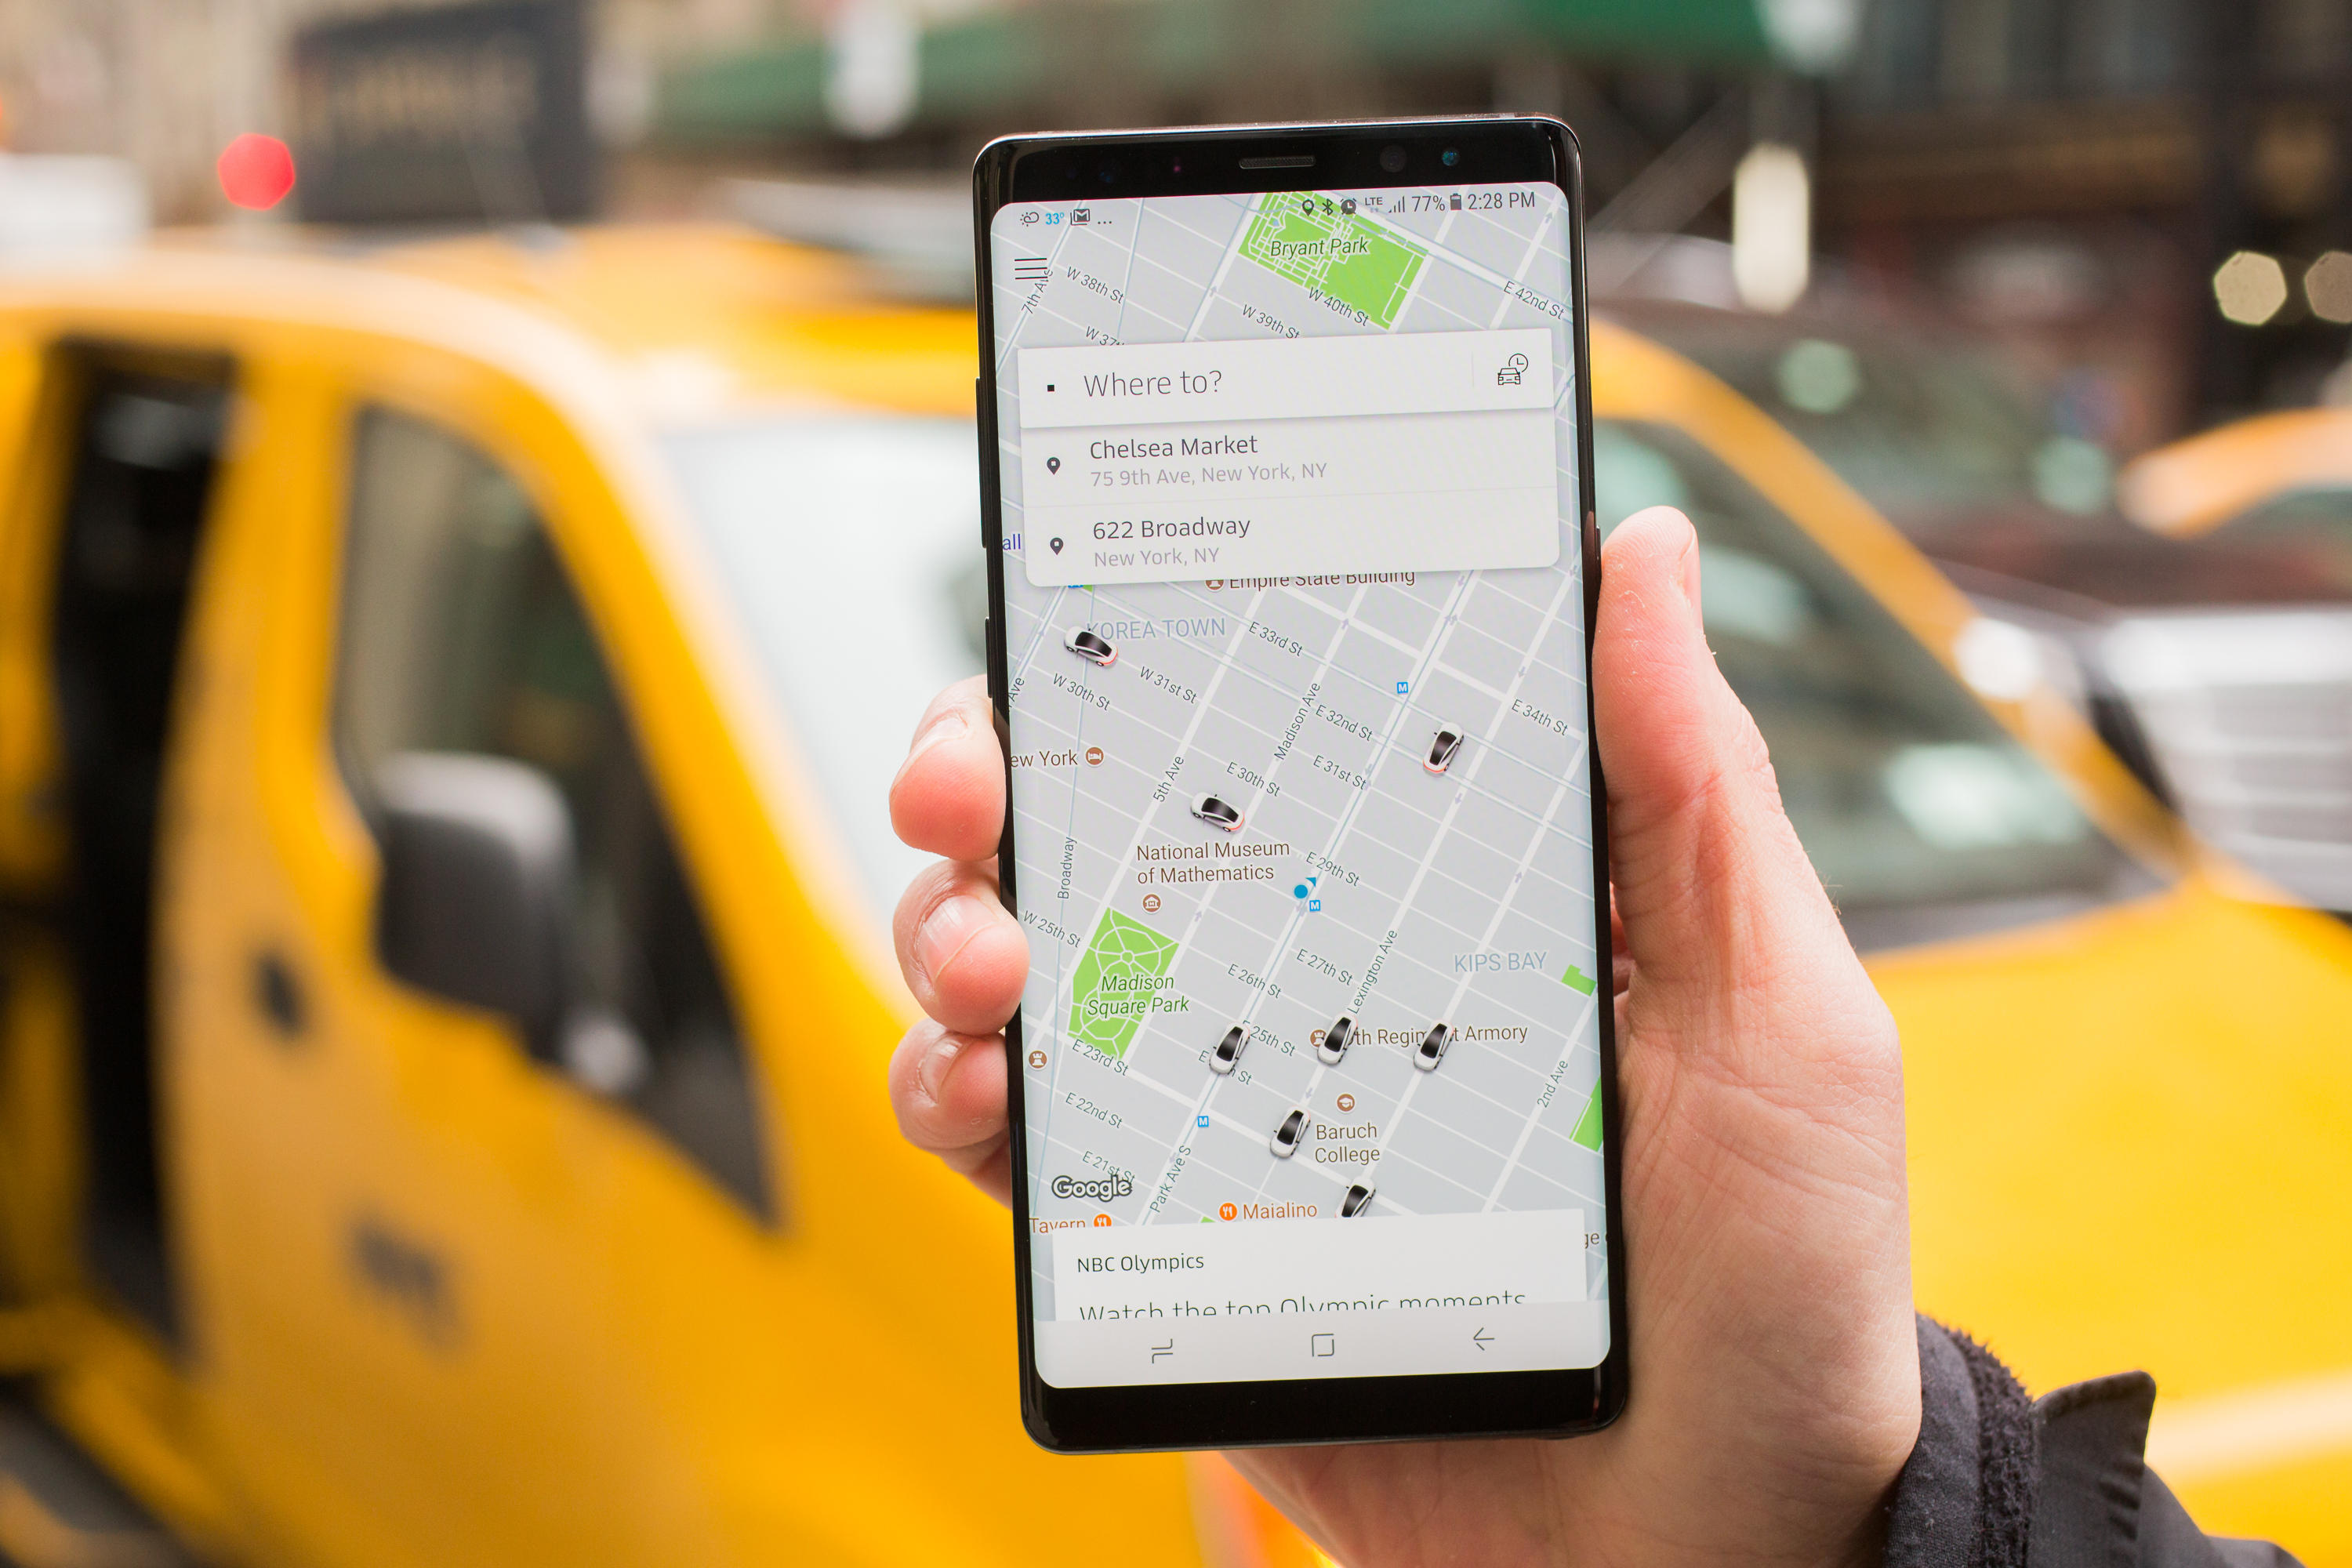 03-uber-android-2018-photos-cnet